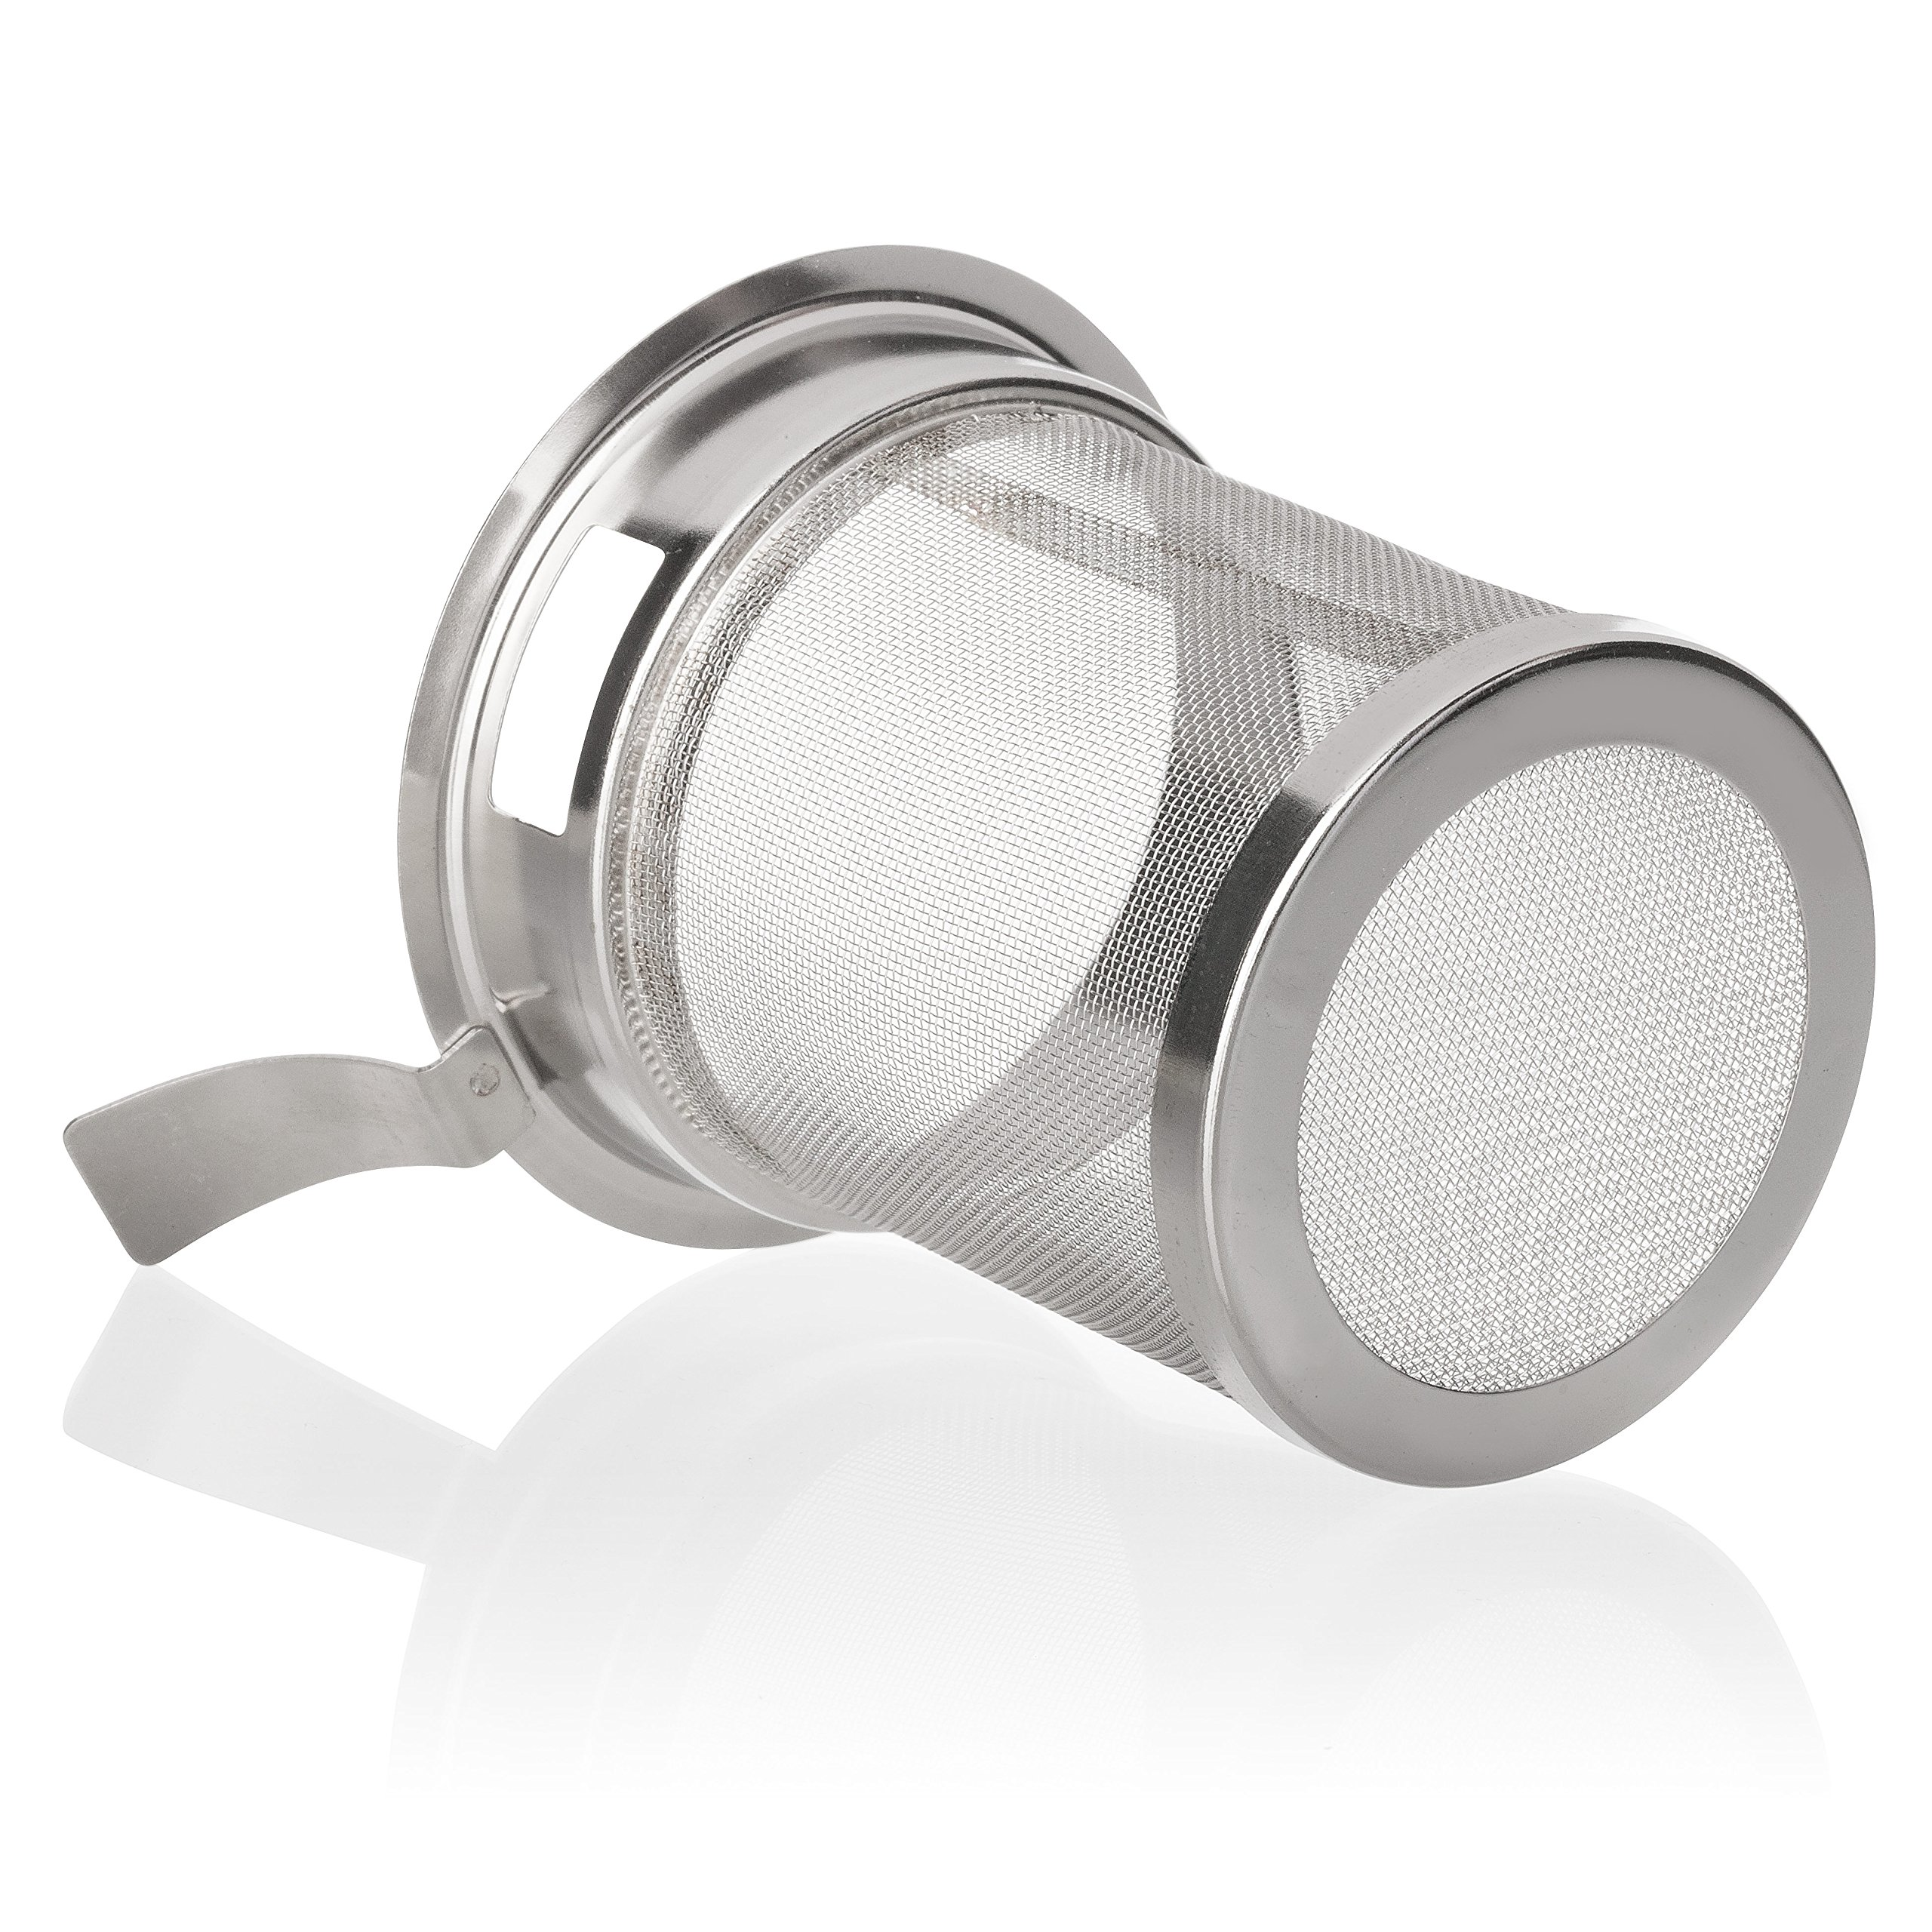 Price & Kensington Six Cup Stainless Steel Filter